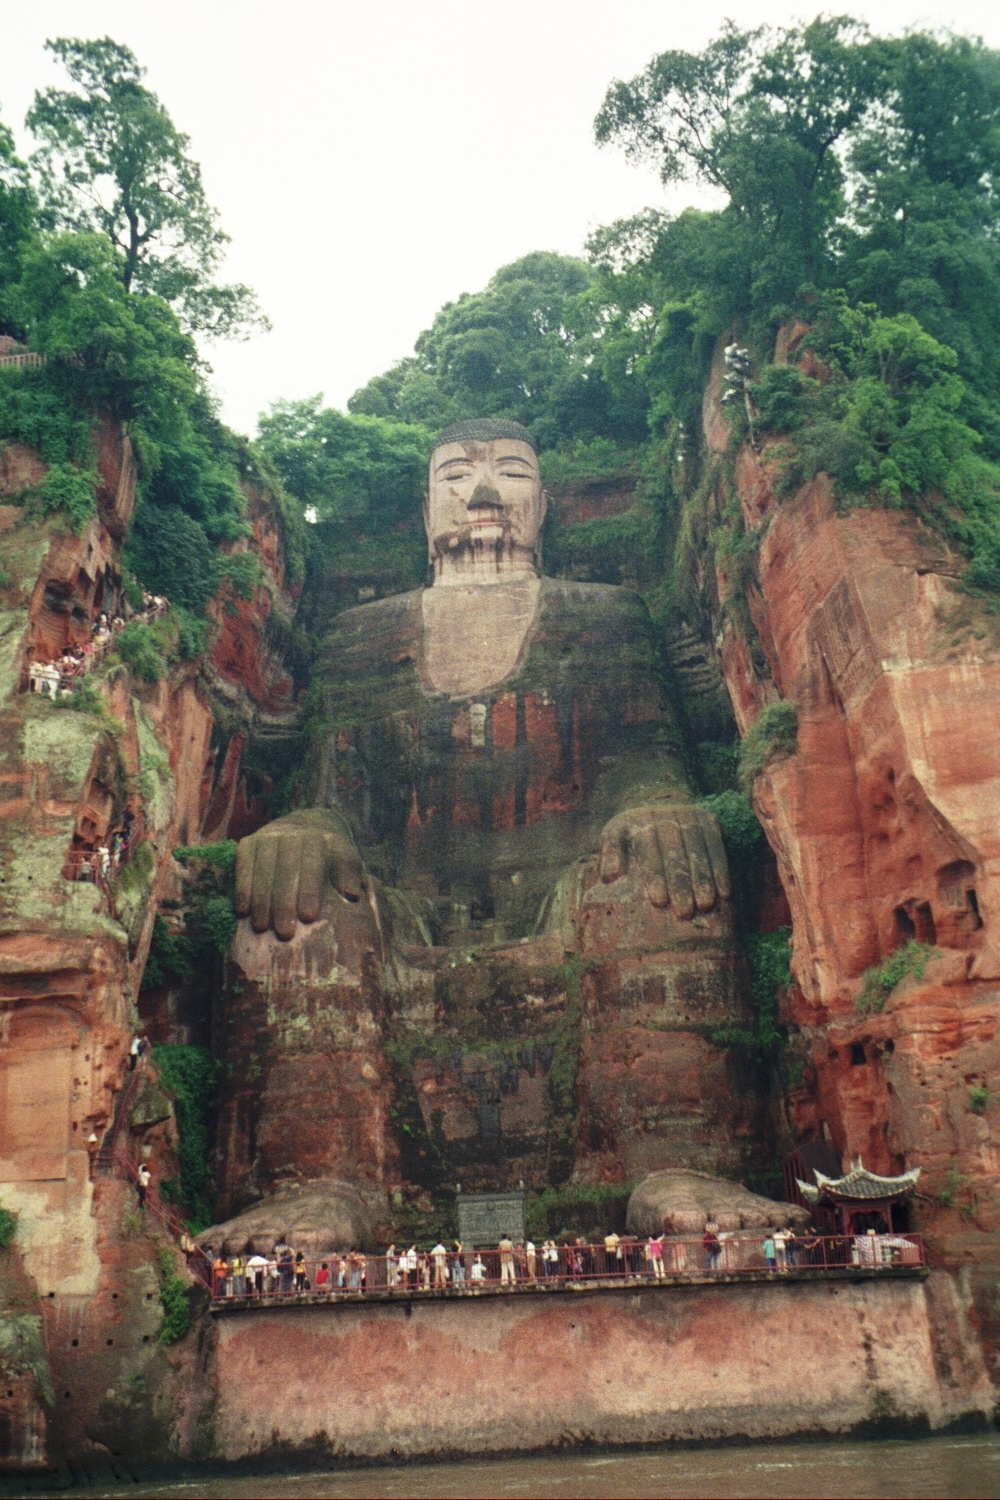 Leshan Giant Buddha, at 237 feet it is far and away the Buddha statue in the world. It is so large that I could sit on its small toenail. Built during the Tang Dynasty (started 711 and finished 803.) It is carved out of a cliff face at the junction of two merging rivers.